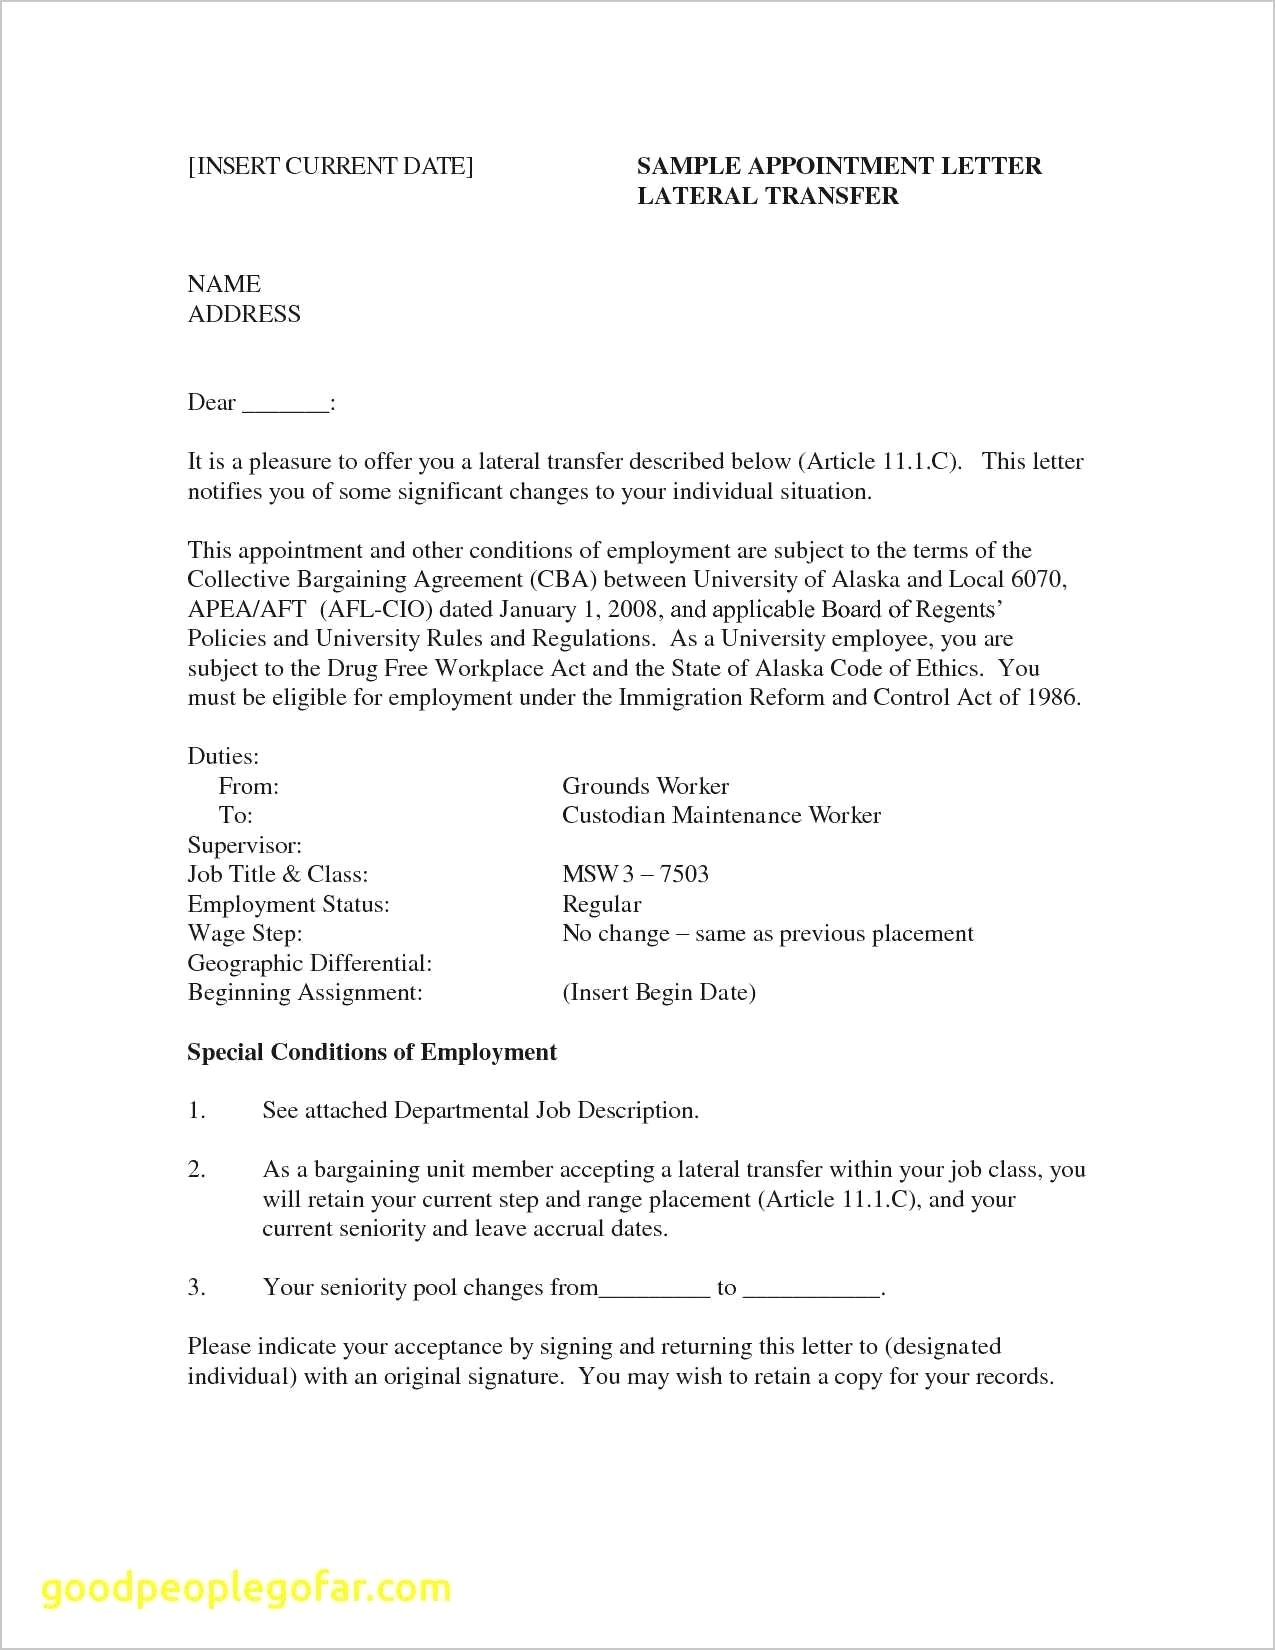 job resume maker example-Resumes Posting Lovely Best Resume Maker Awesome Resume Maker 0d 8-t